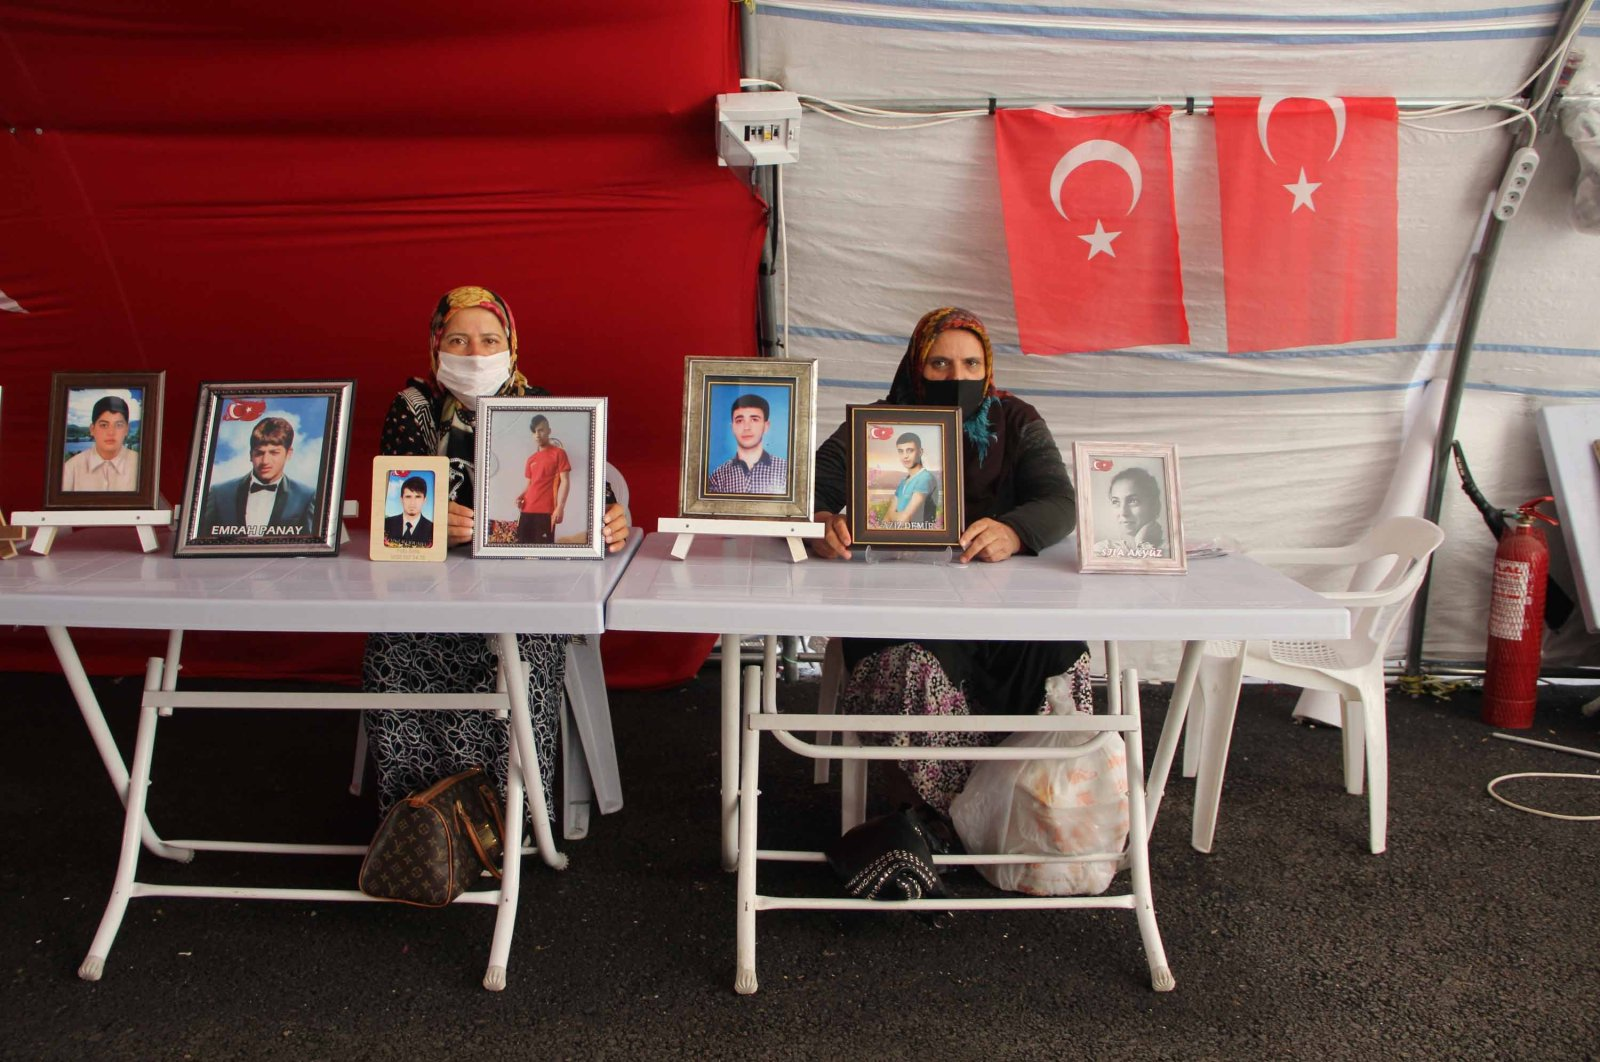 Diyarbakır families have been protesting the PKK terrorist group for 392 days in front of the pro-PKK Peoples' Democratic Party (HDP) provincial headquarters in Diyarbakır, Turkey, Sept. 28, 2020. (DHA Photo)